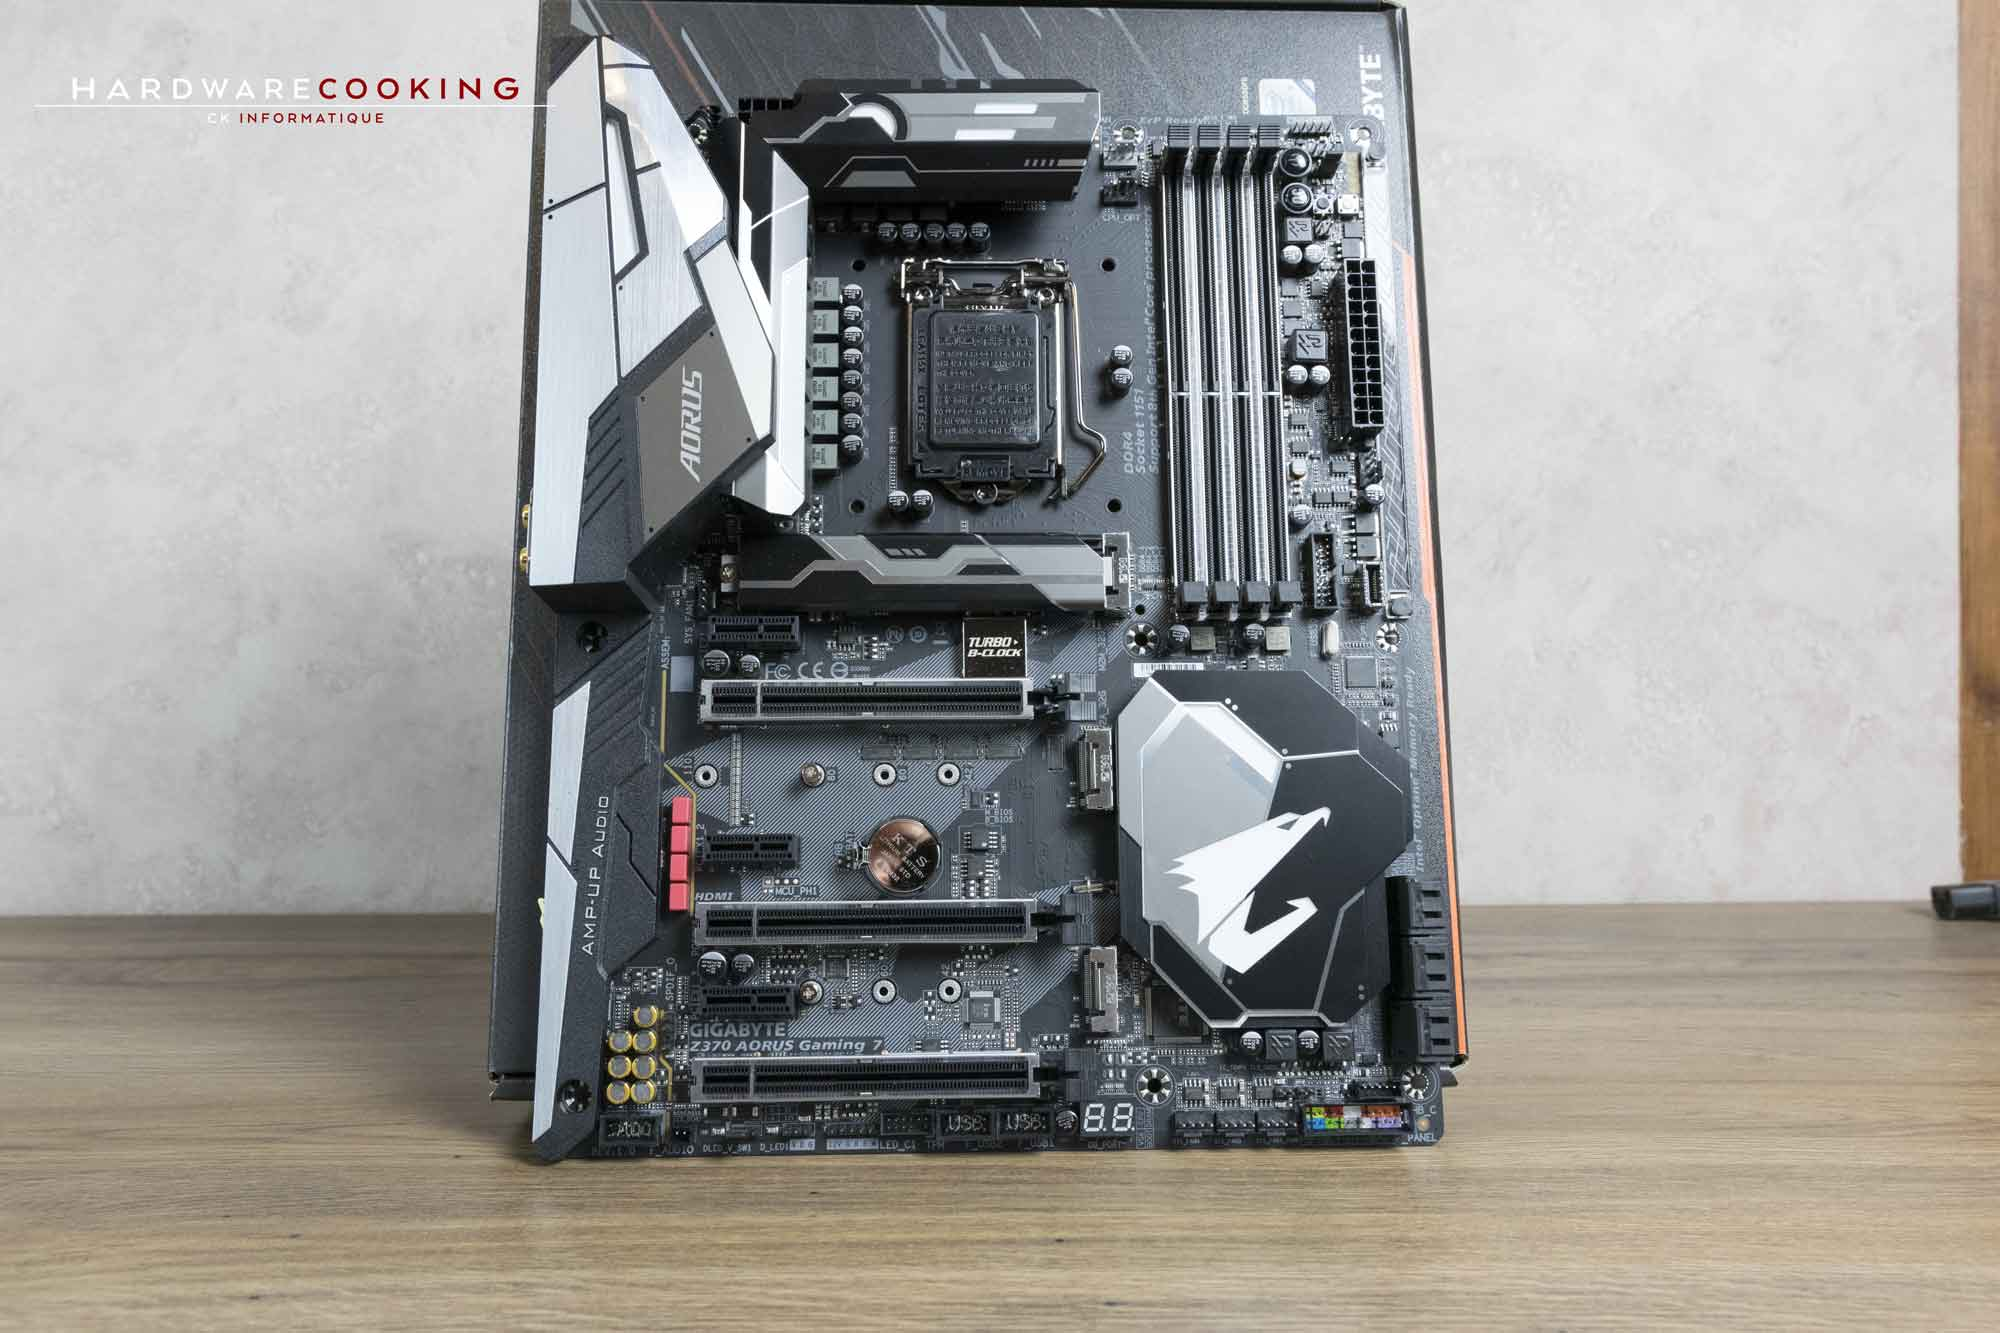 Test : AORUS Z370 AORUS GAMING 7 - Page 4 sur 7 - HardwareCooking